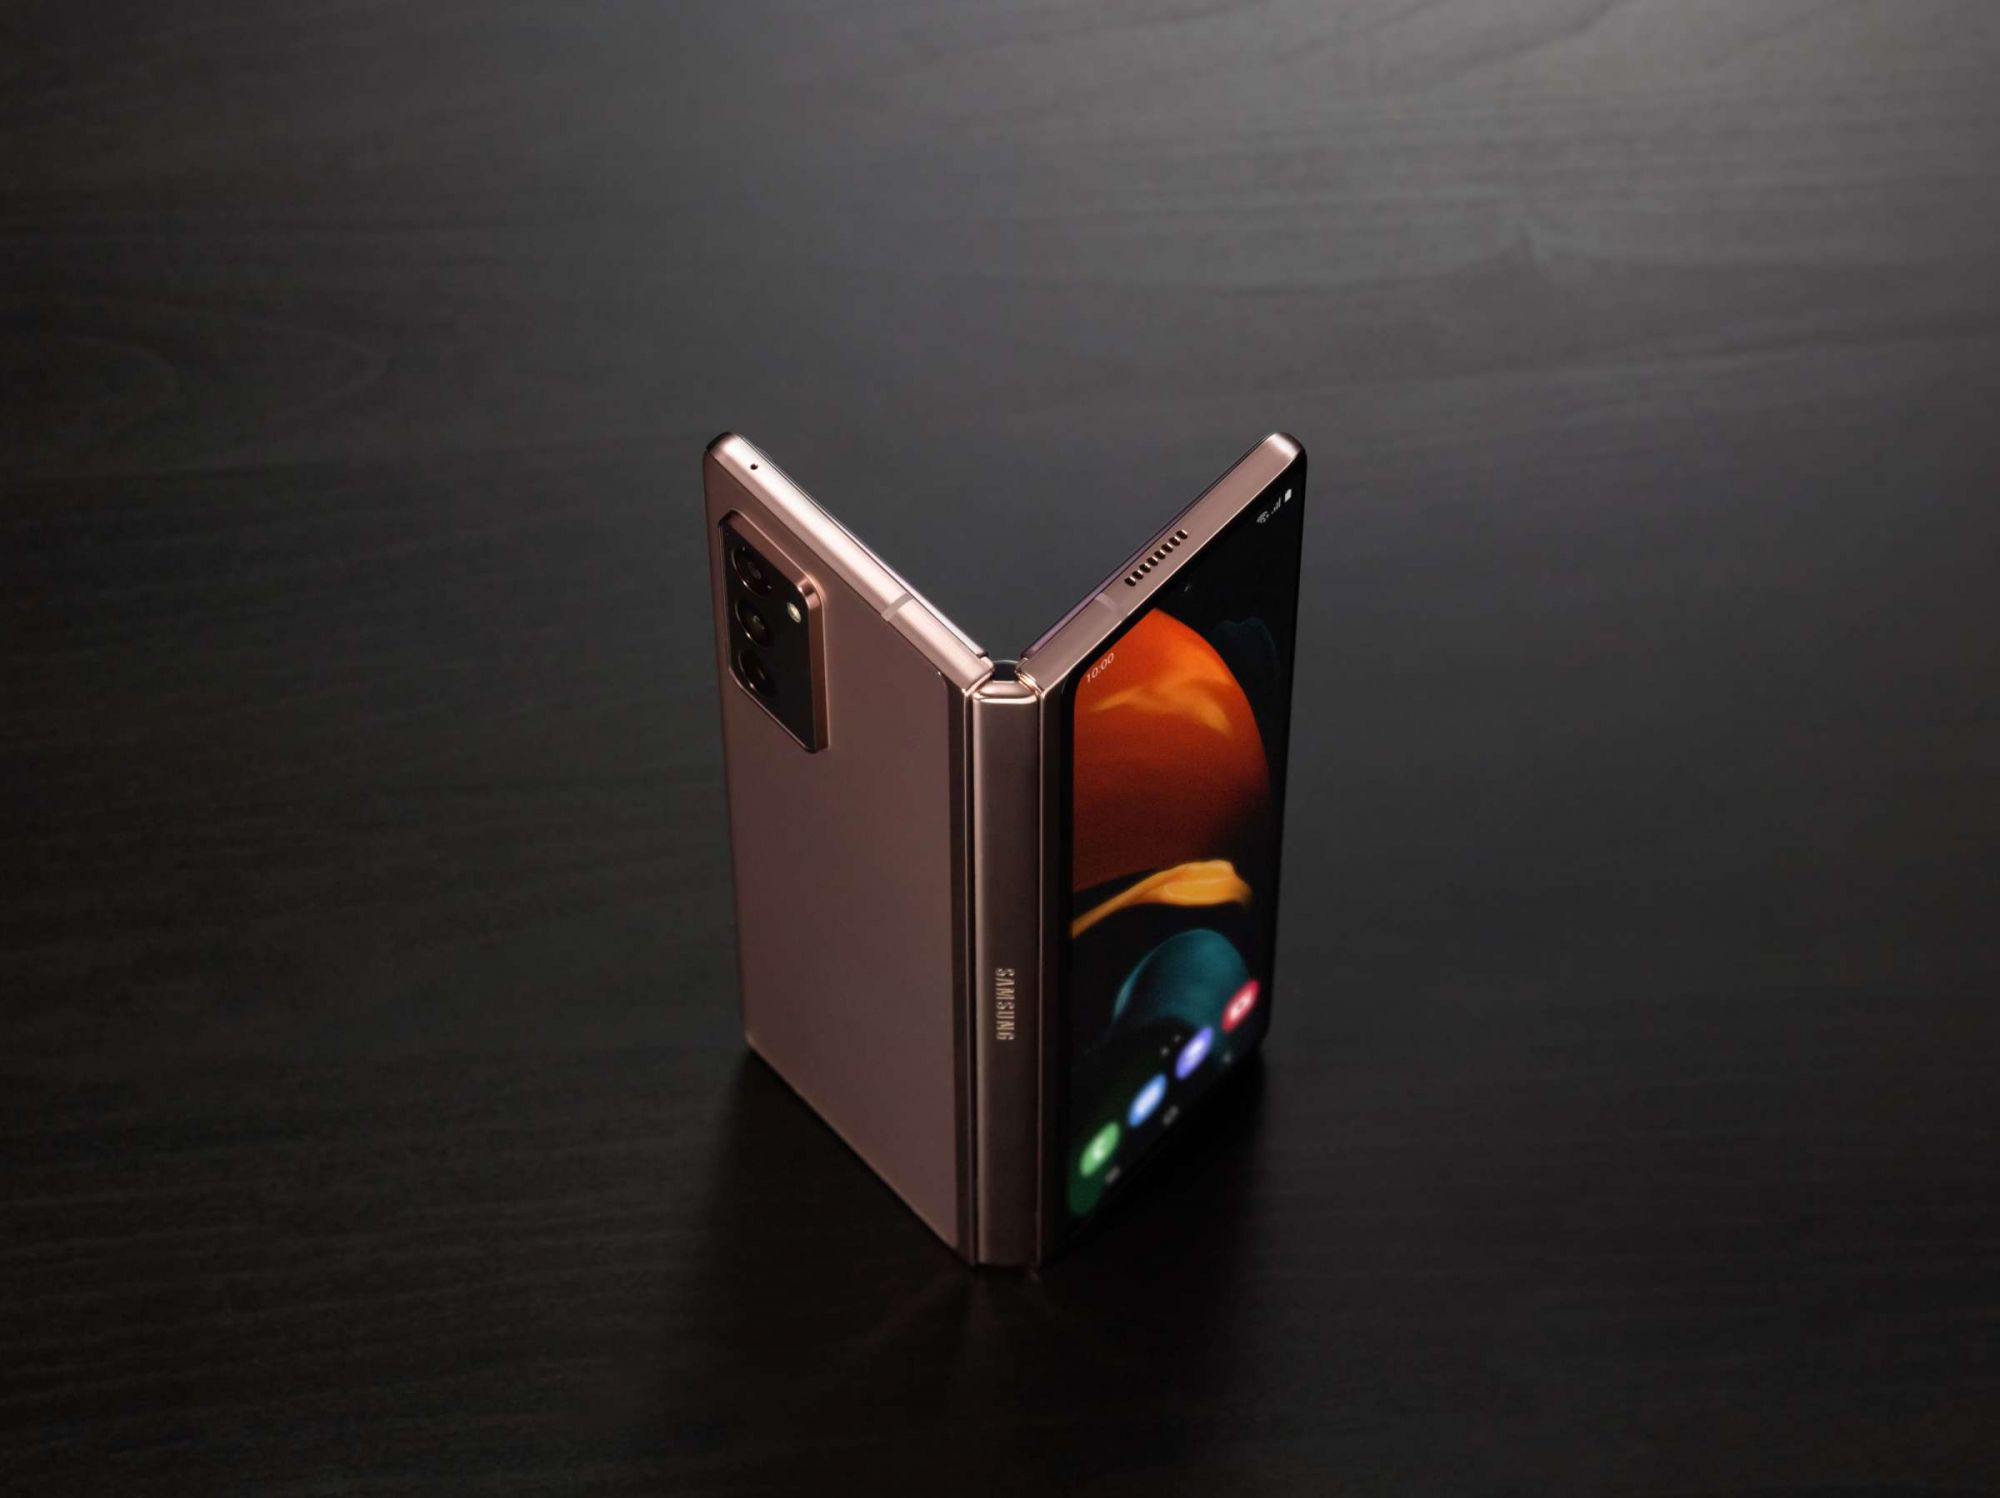 Tatler Deep Dive: All About The Galaxy Z Fold2 5G's Design, Made For The Multifaceted Individual